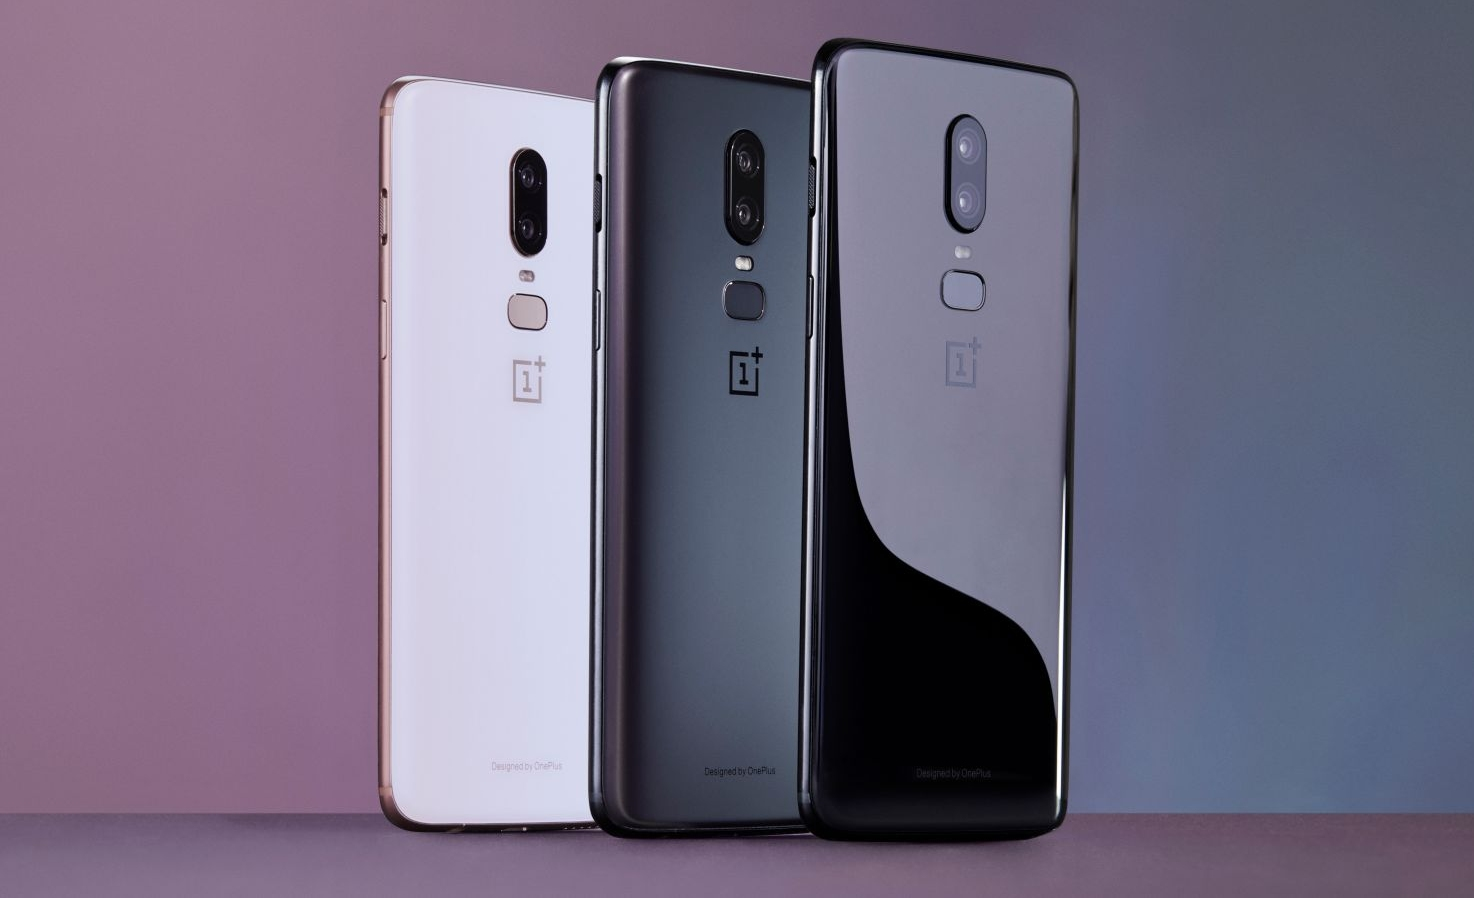 OnePlus 6 crosses 1 million units globally, company launches 'Community Celebration Season'